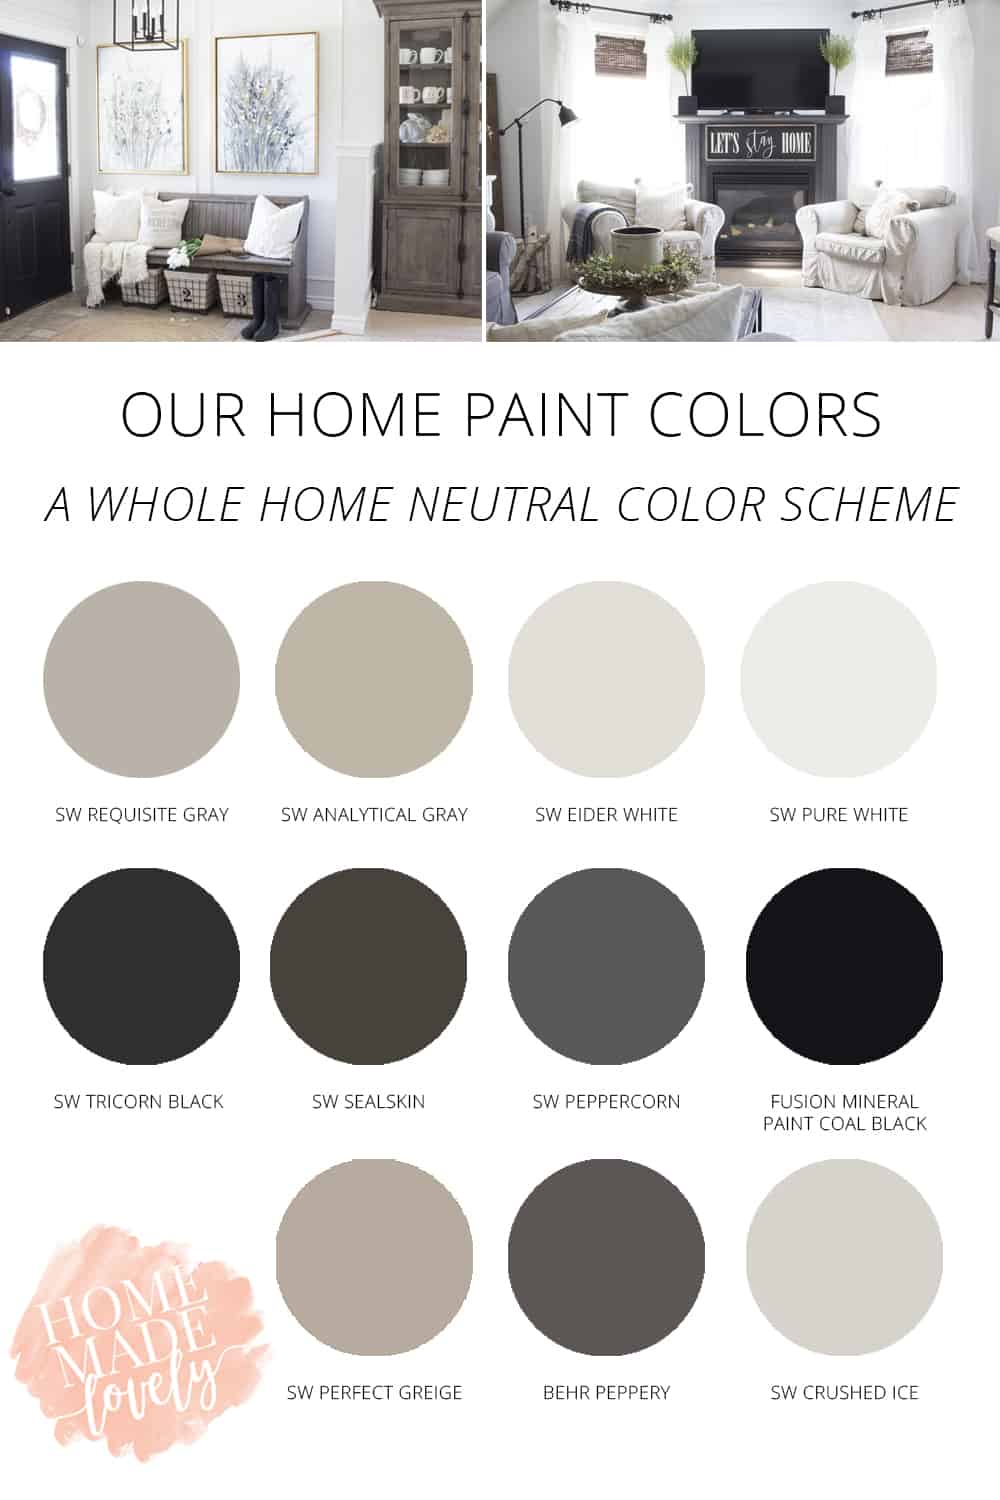 our home paint colors - neutral color palette